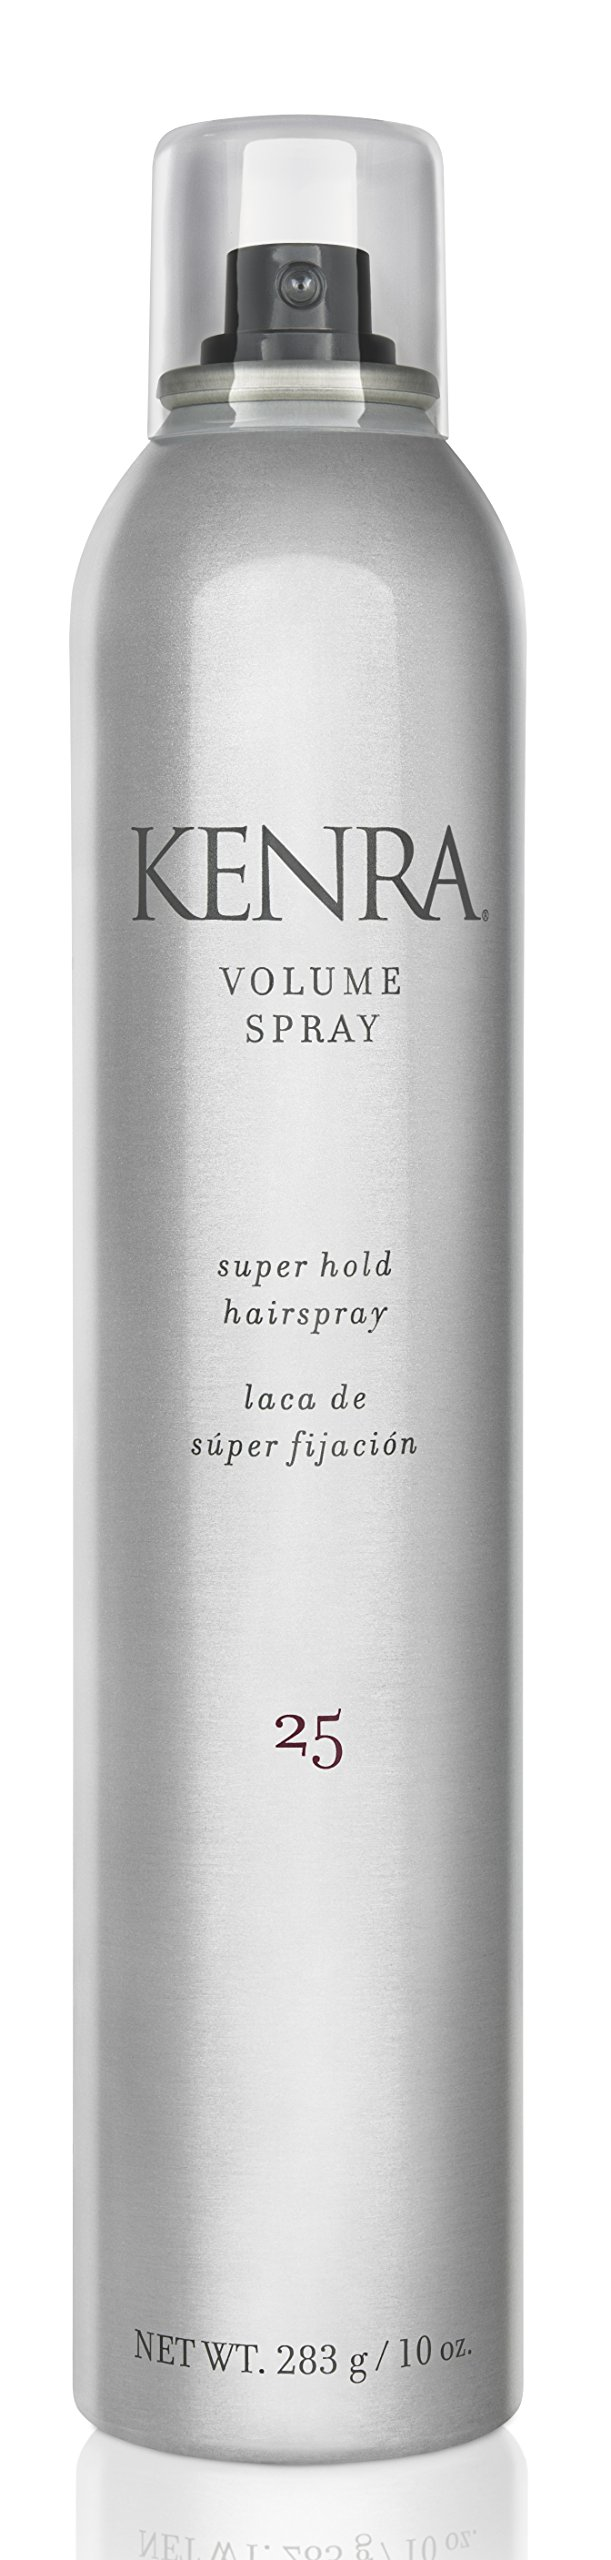 Kenra Volume Spray #25, 55% VOC, 10-Ounce by Kenra